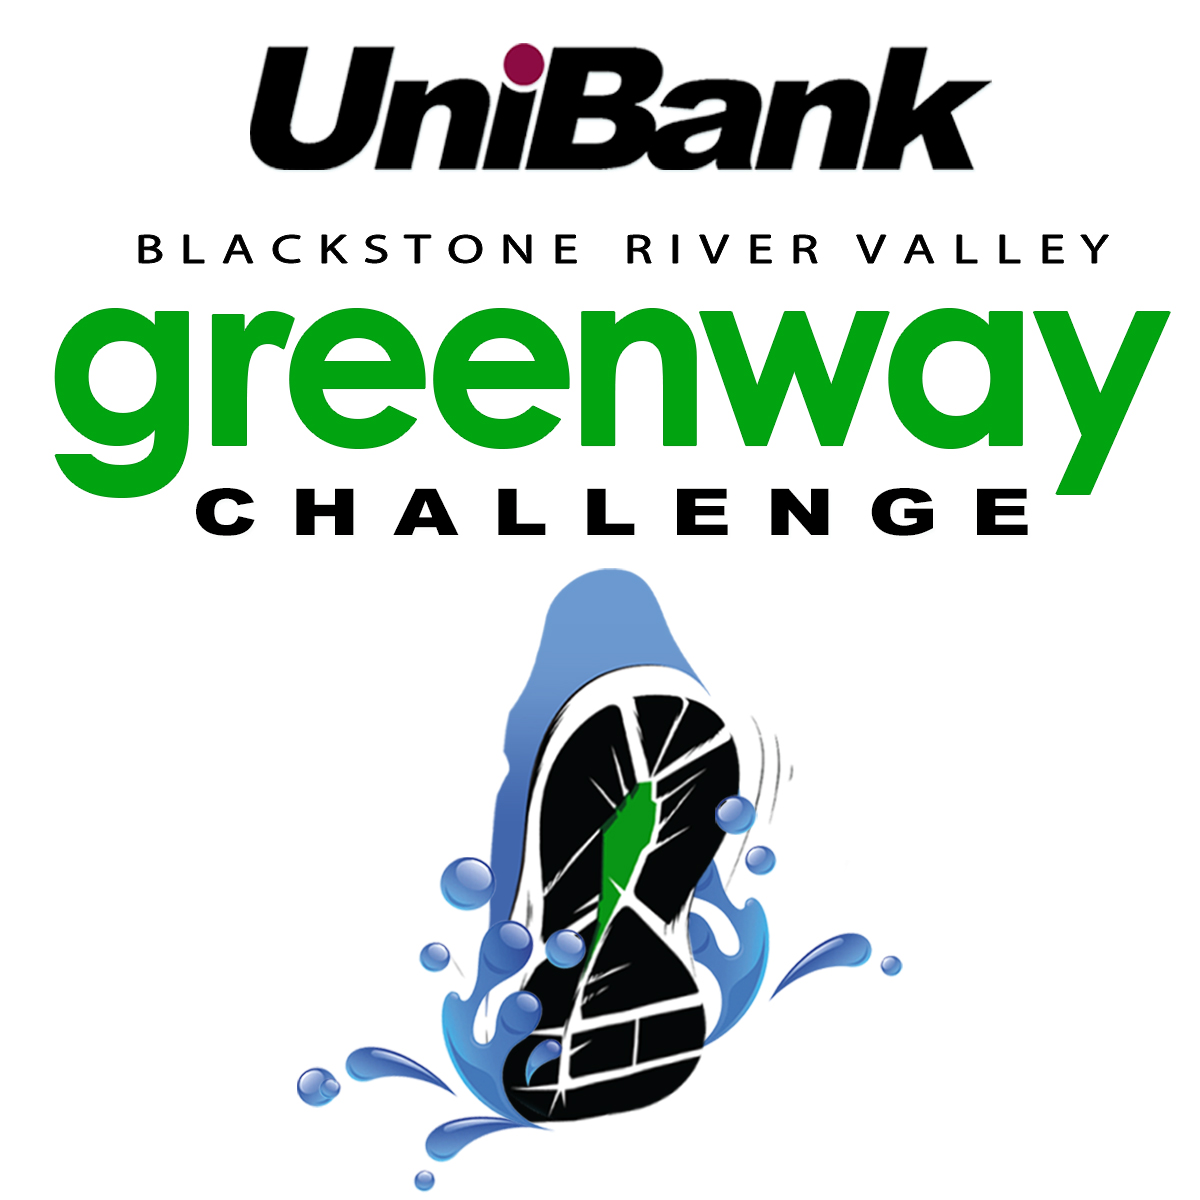 Event   Greenway Challenge   Whitinsville, MA   2016-09-24